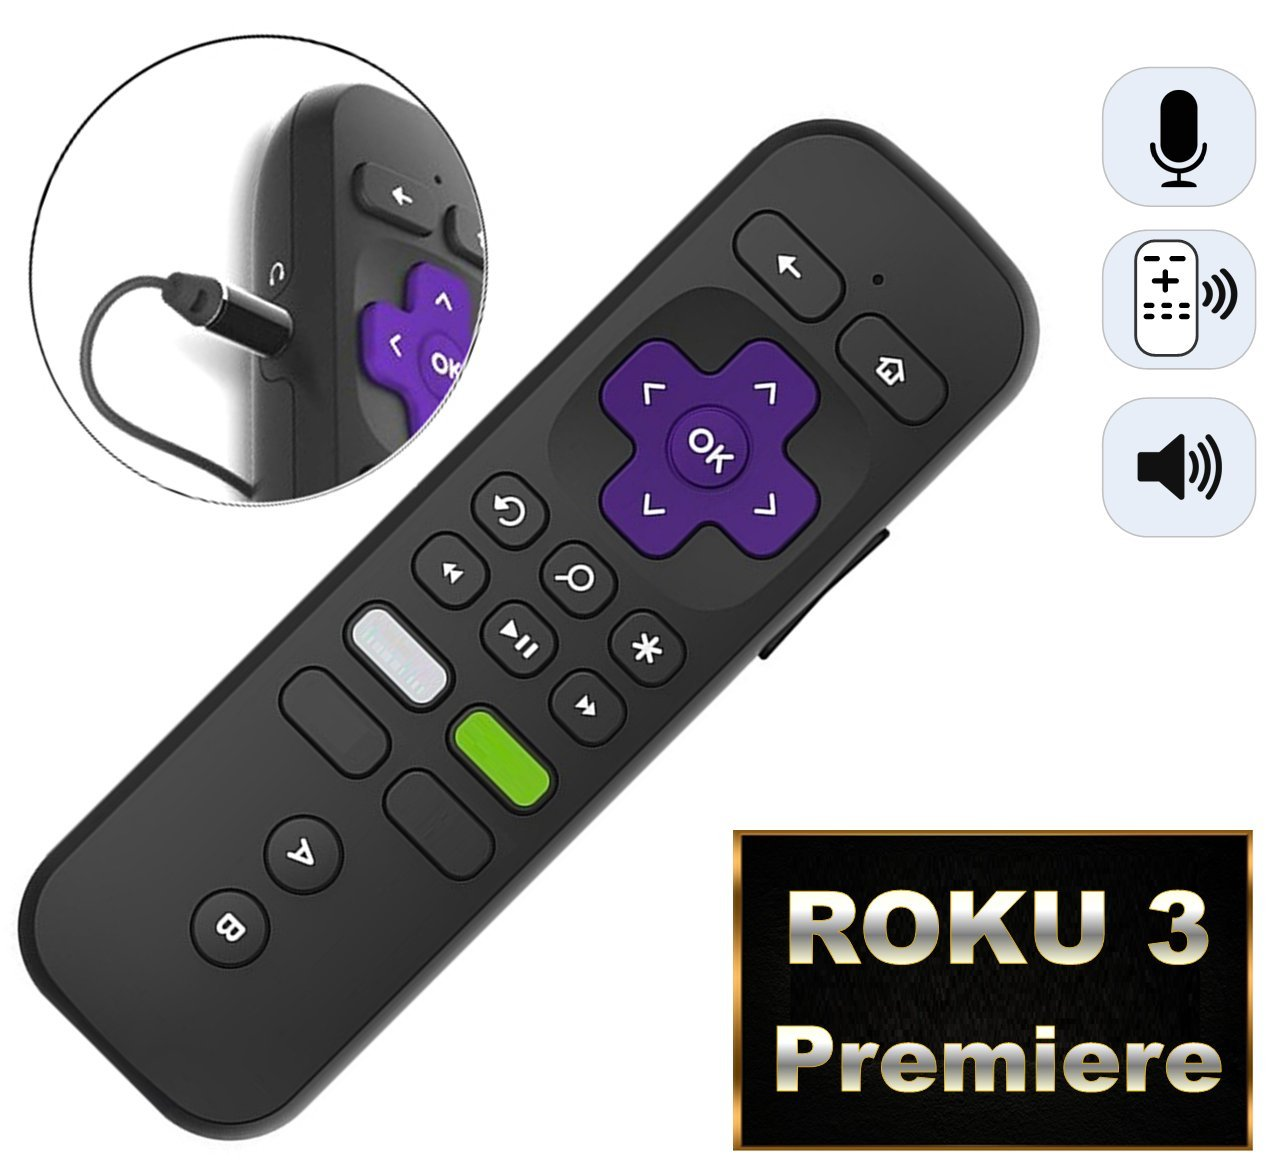 Replacement Enhanced Voice Remote with Headphone Jack Voice Control for Roku 3/ Roku 4/Roku Premiere/Ultra, Compatible with 2015 Newer Model Roku Stick [No TV Power Button] by IKU